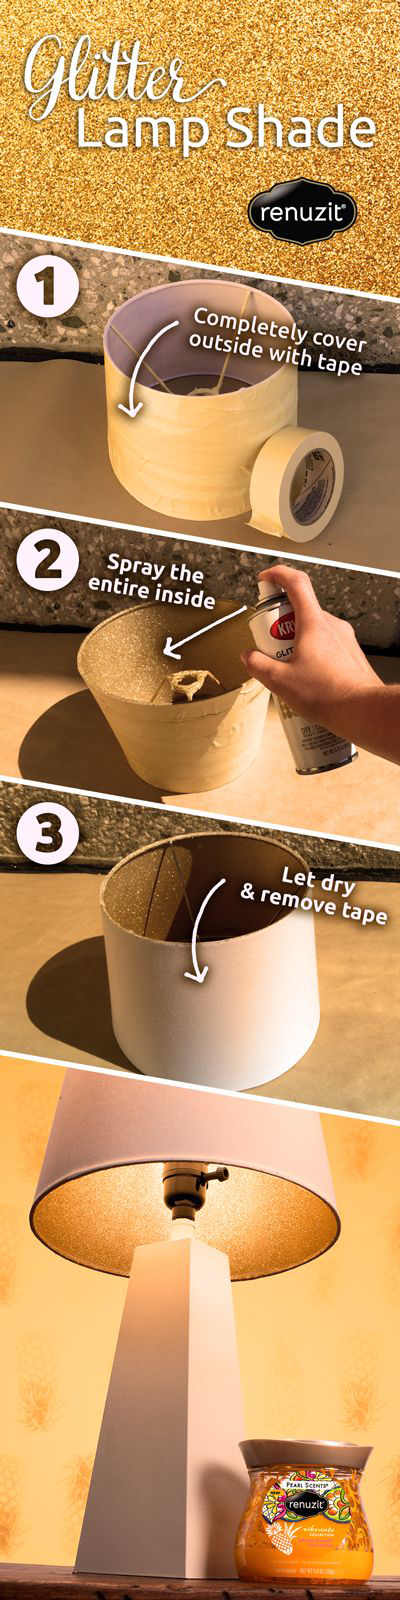 diy-gliter-lamp-shade